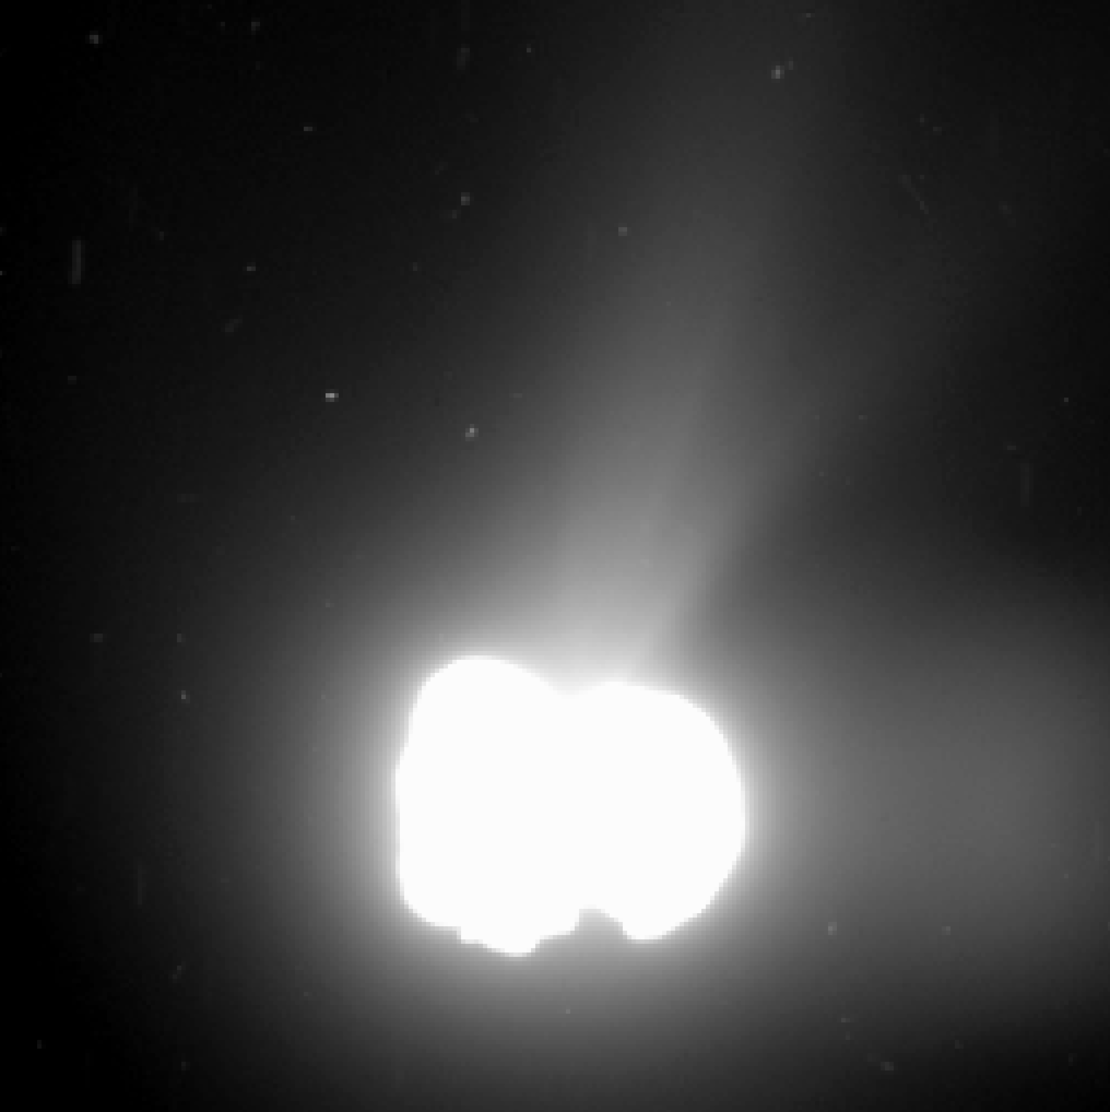 Comet activity on 2 August 2014